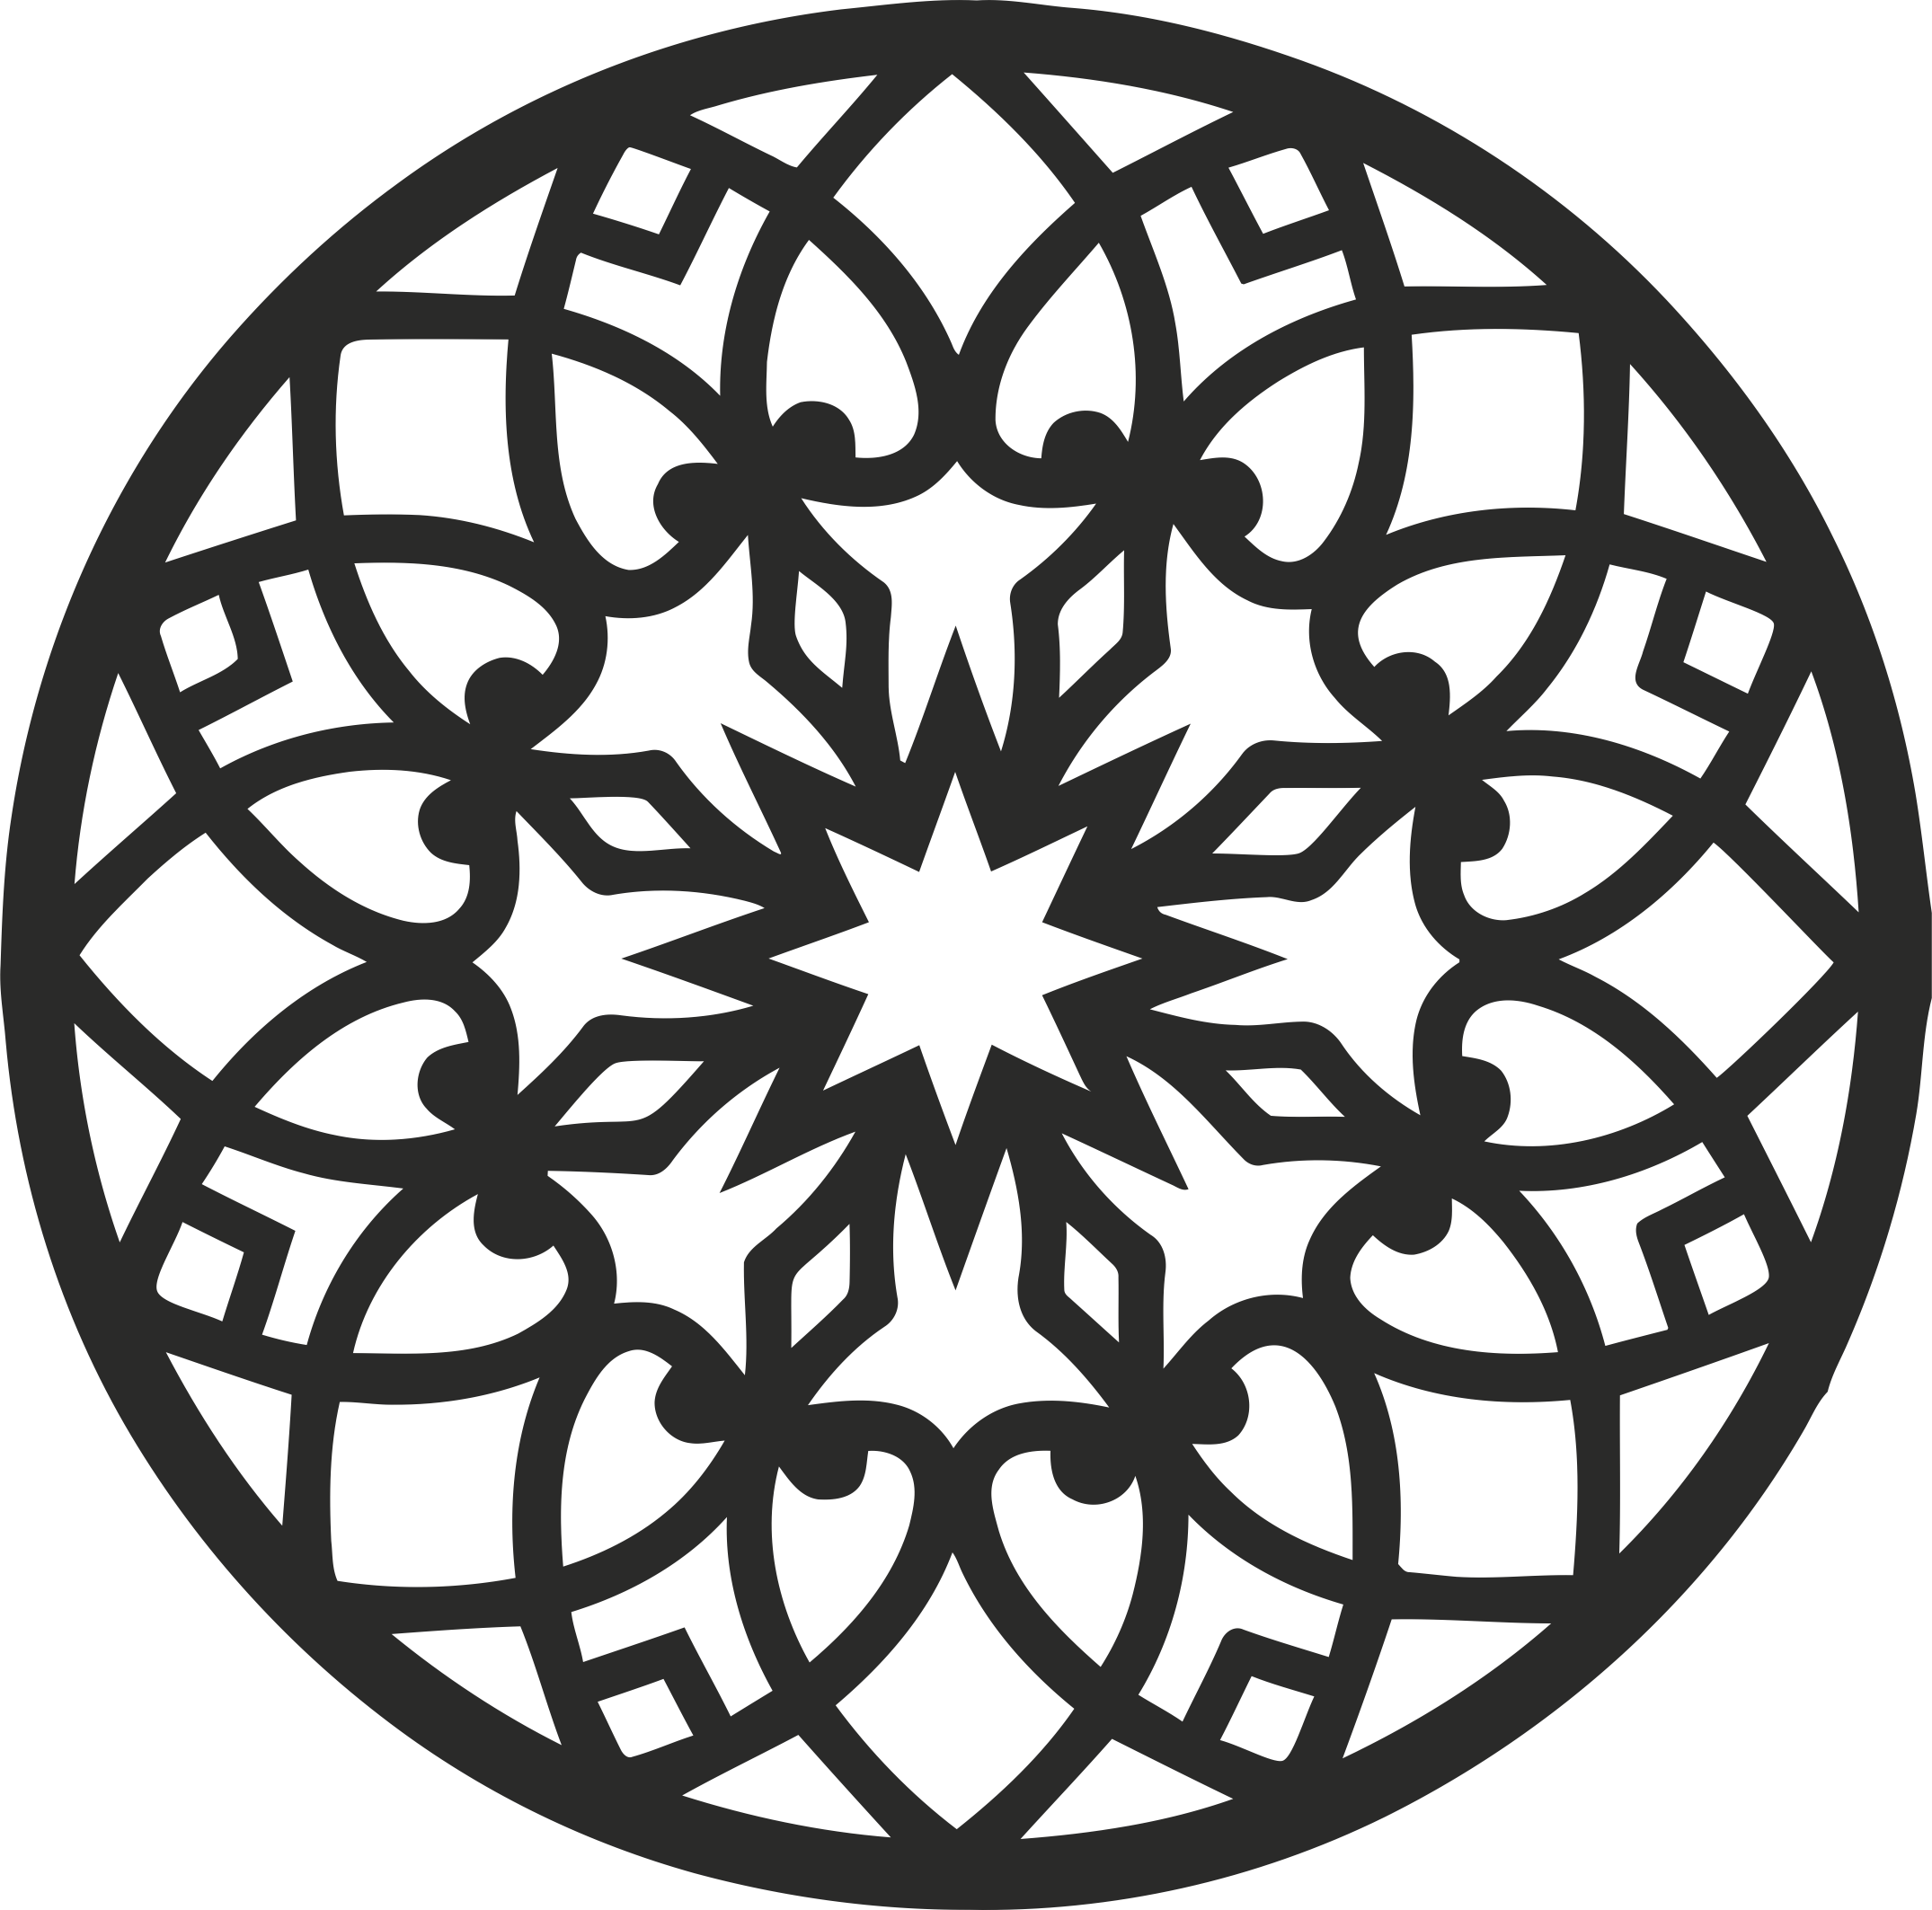 Decorative Round Grille 013 Free DXF File